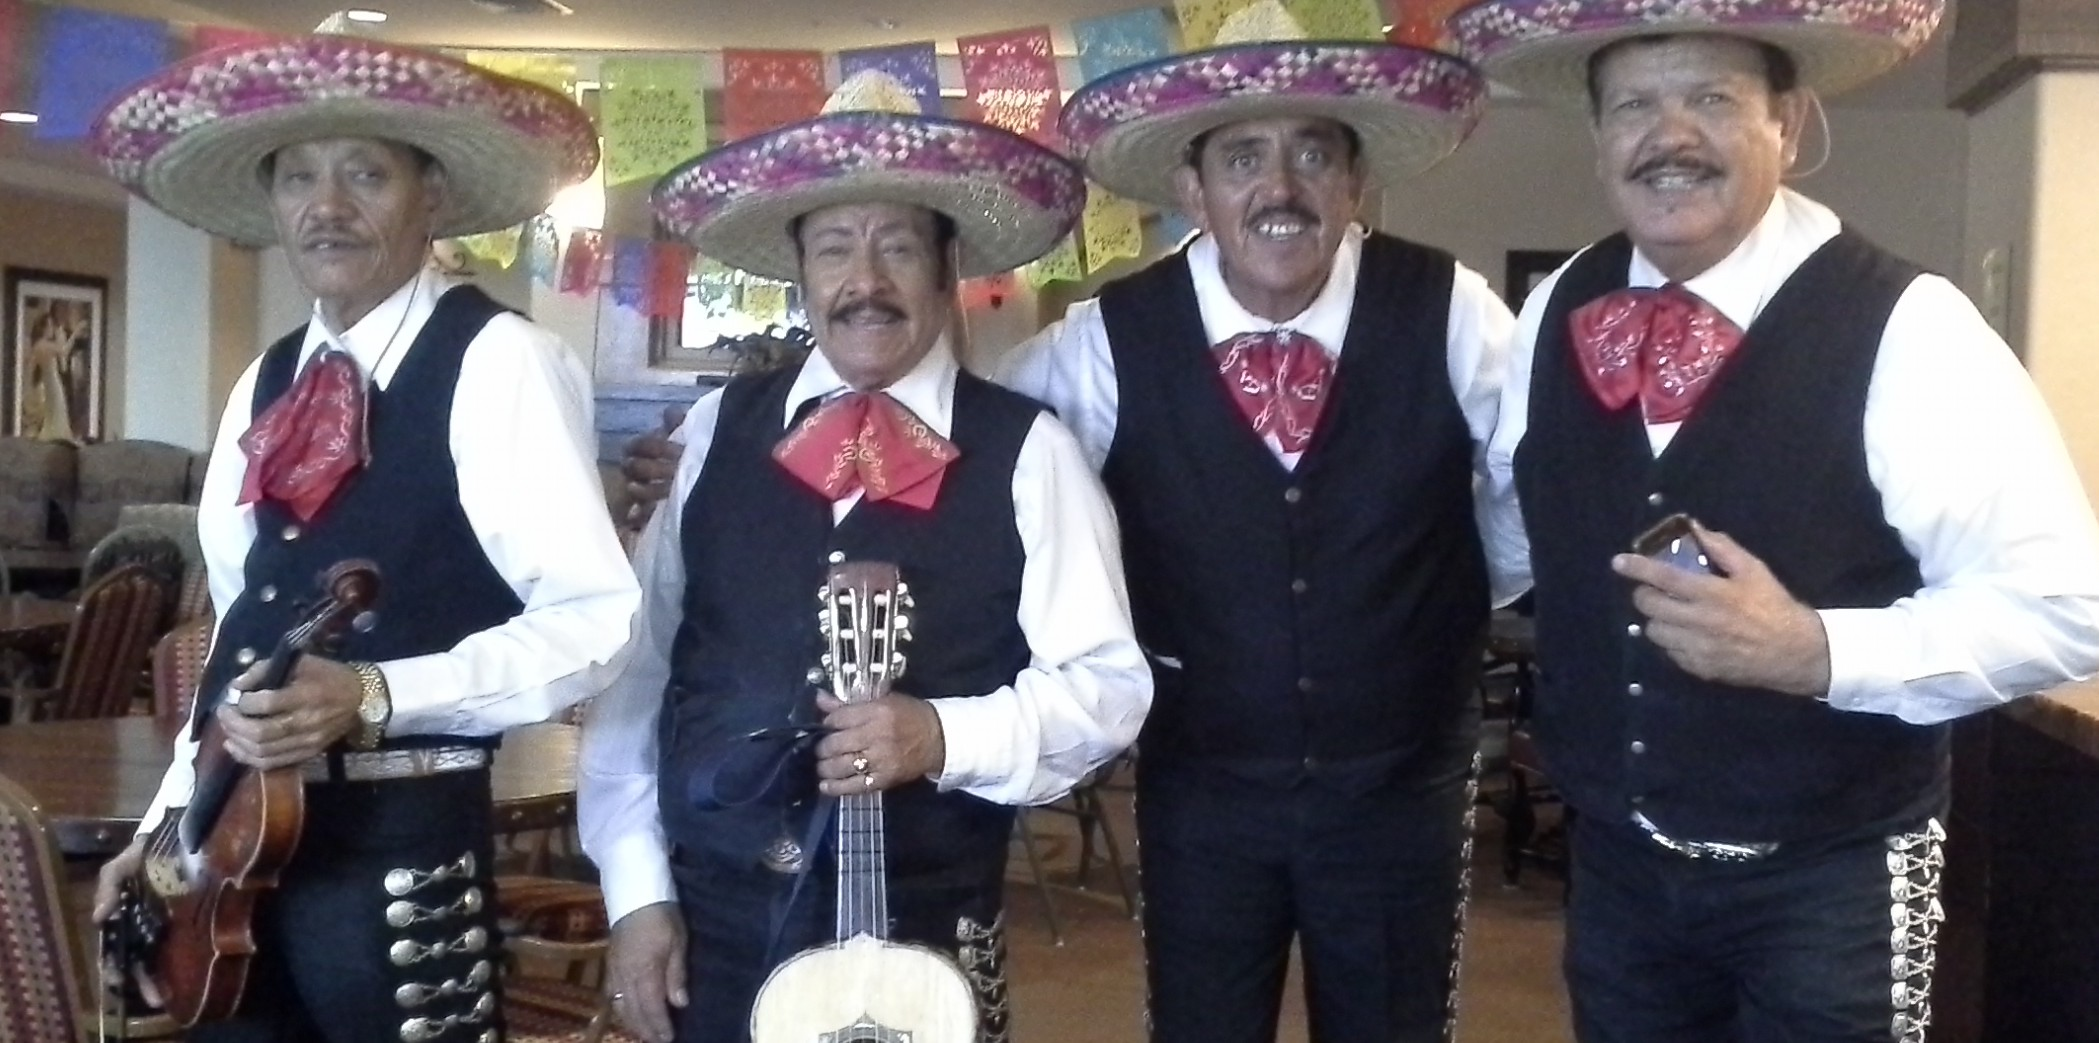 mariachi music More mariachi music videos best mariachi music mariachi is a genre of music that originated in the state of jalisco, in western mexico it is an integration of stringed instruments highly influenced by the cultural .